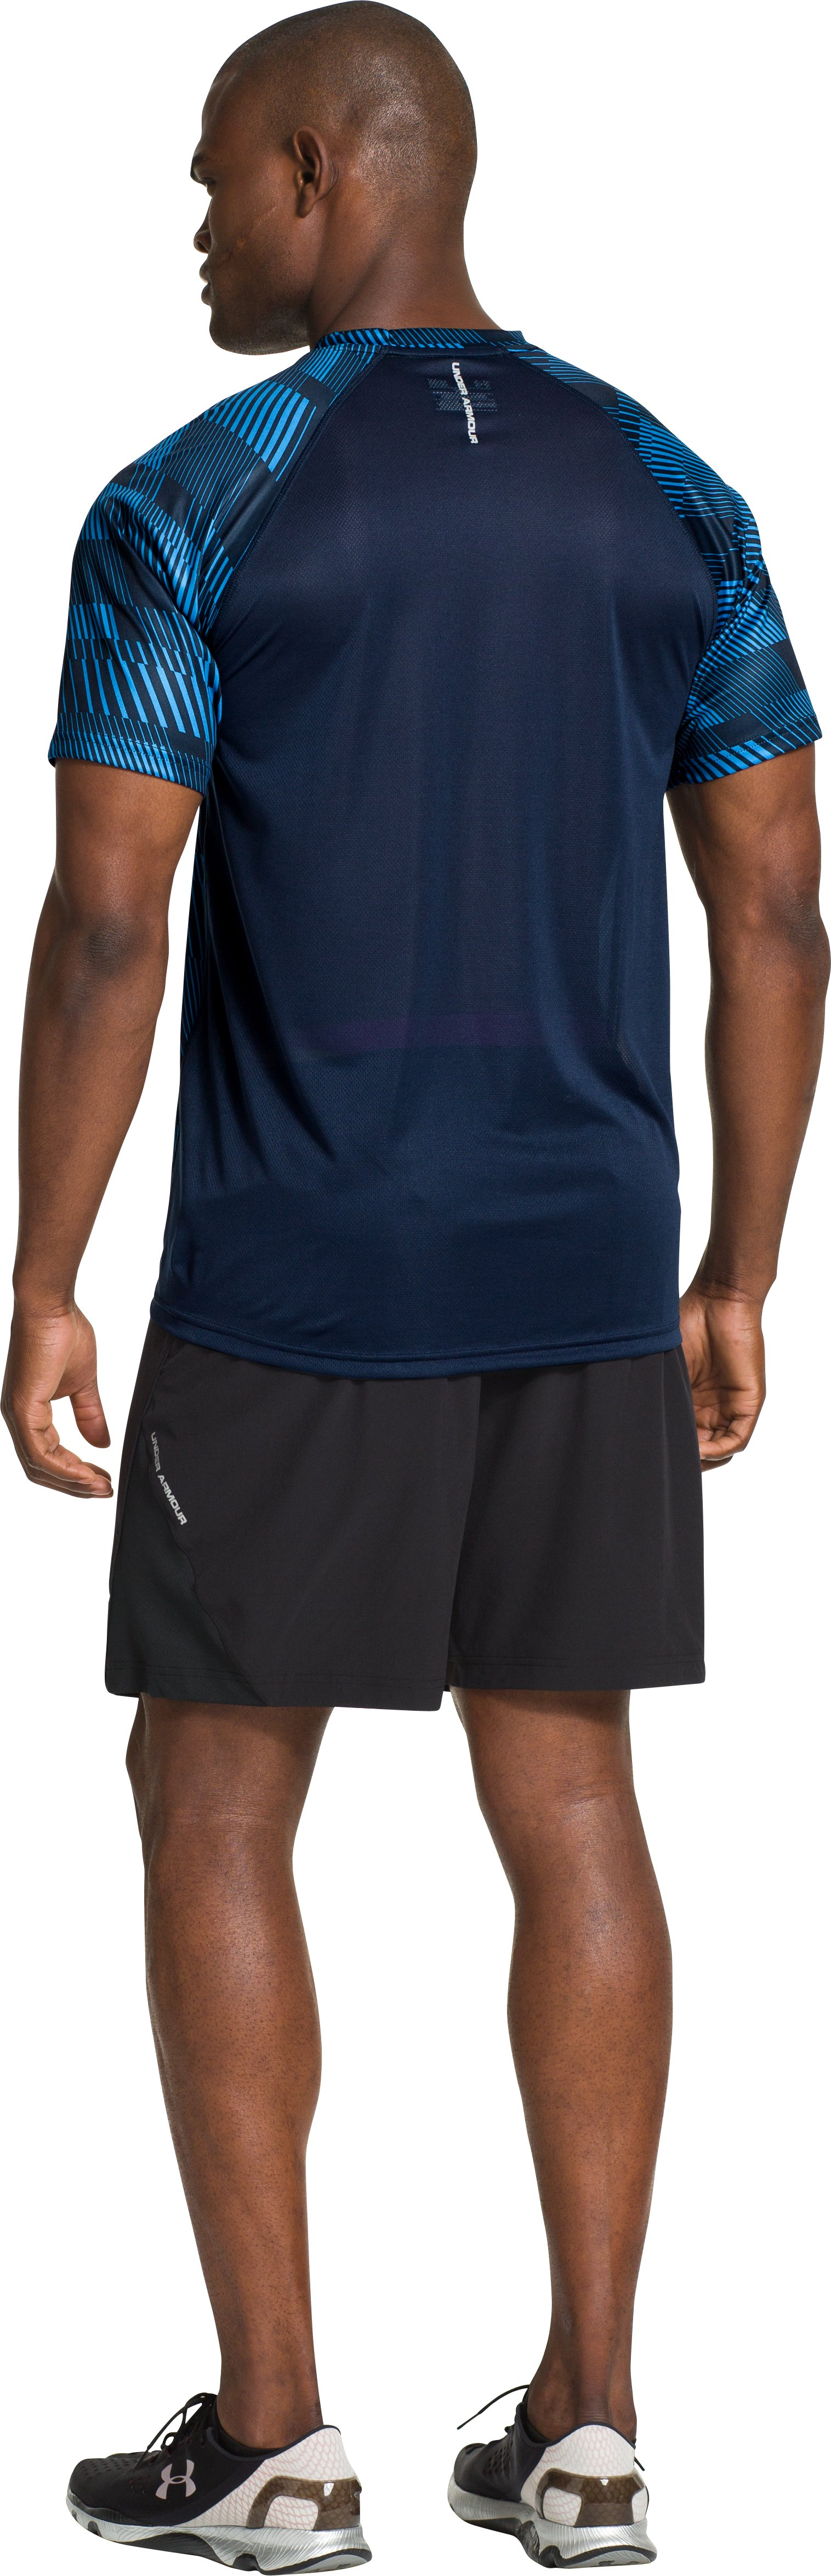 Men's HeatGear® Flyweight Run Short Sleeve, Academy, Back